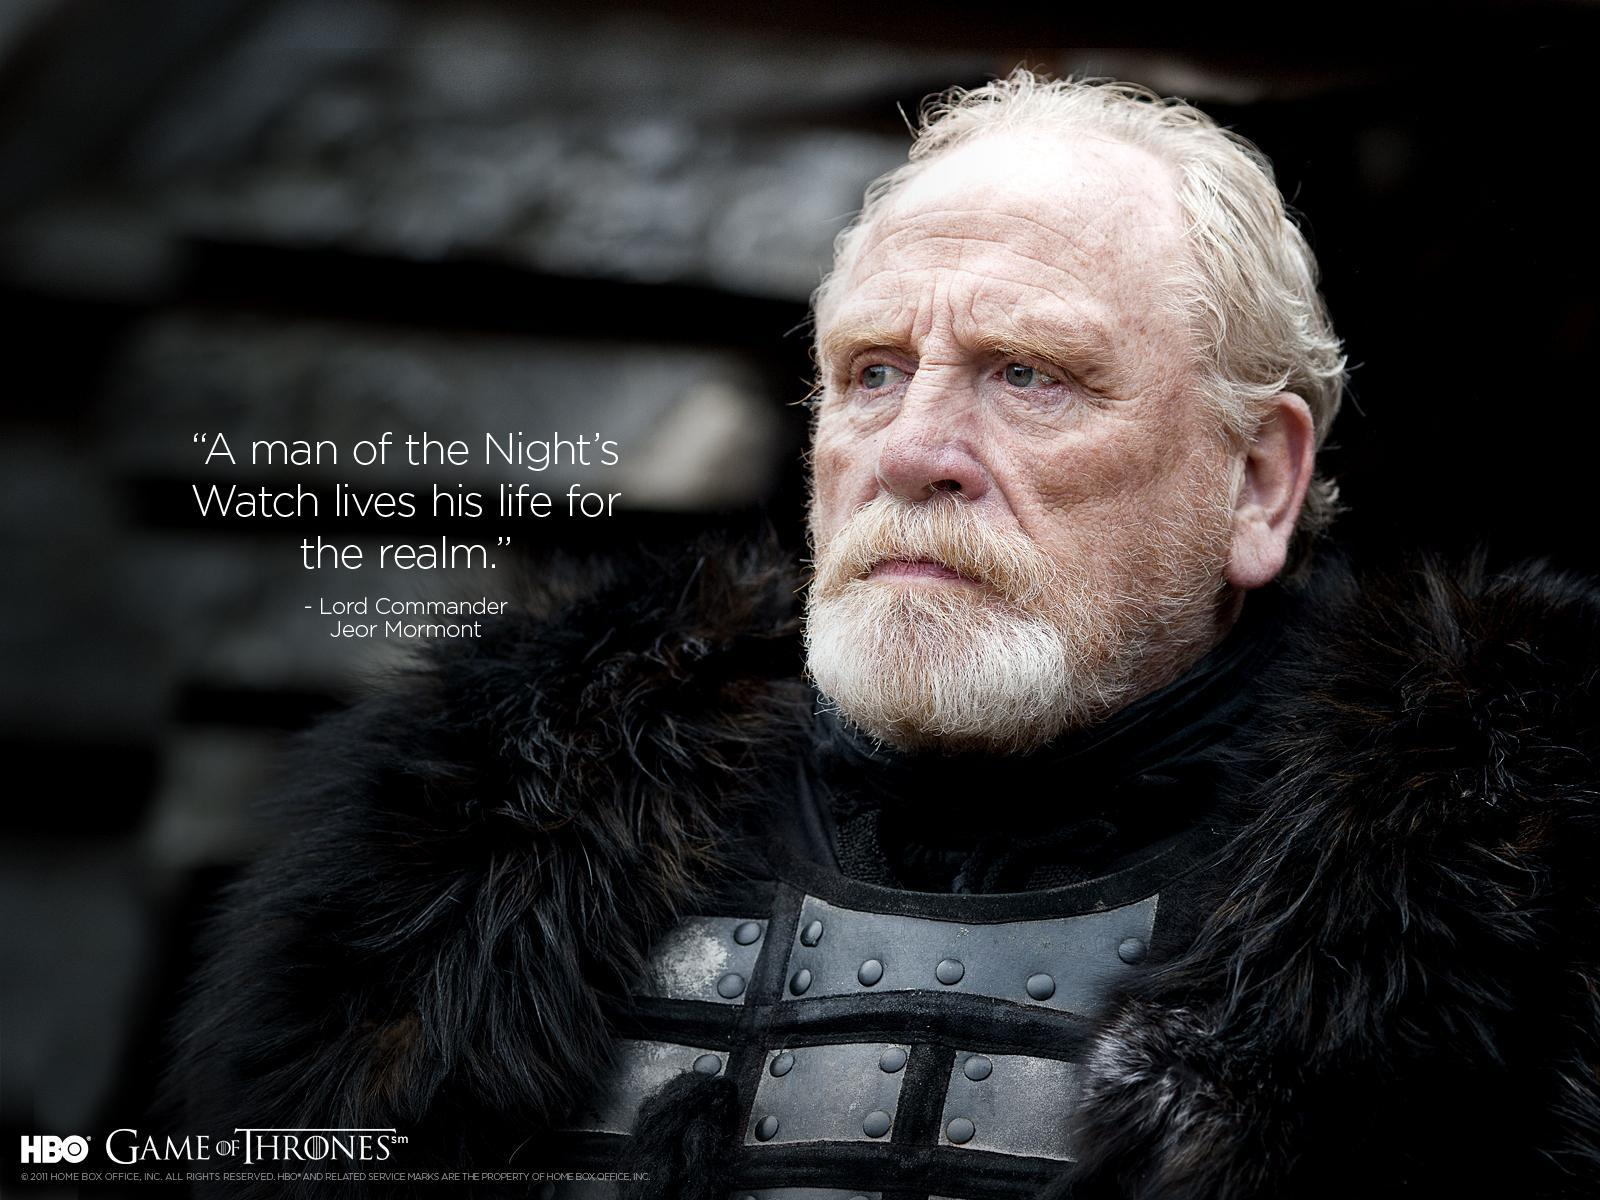 Image gallery for Game of Thrones (TV Series) - FilmAffinity